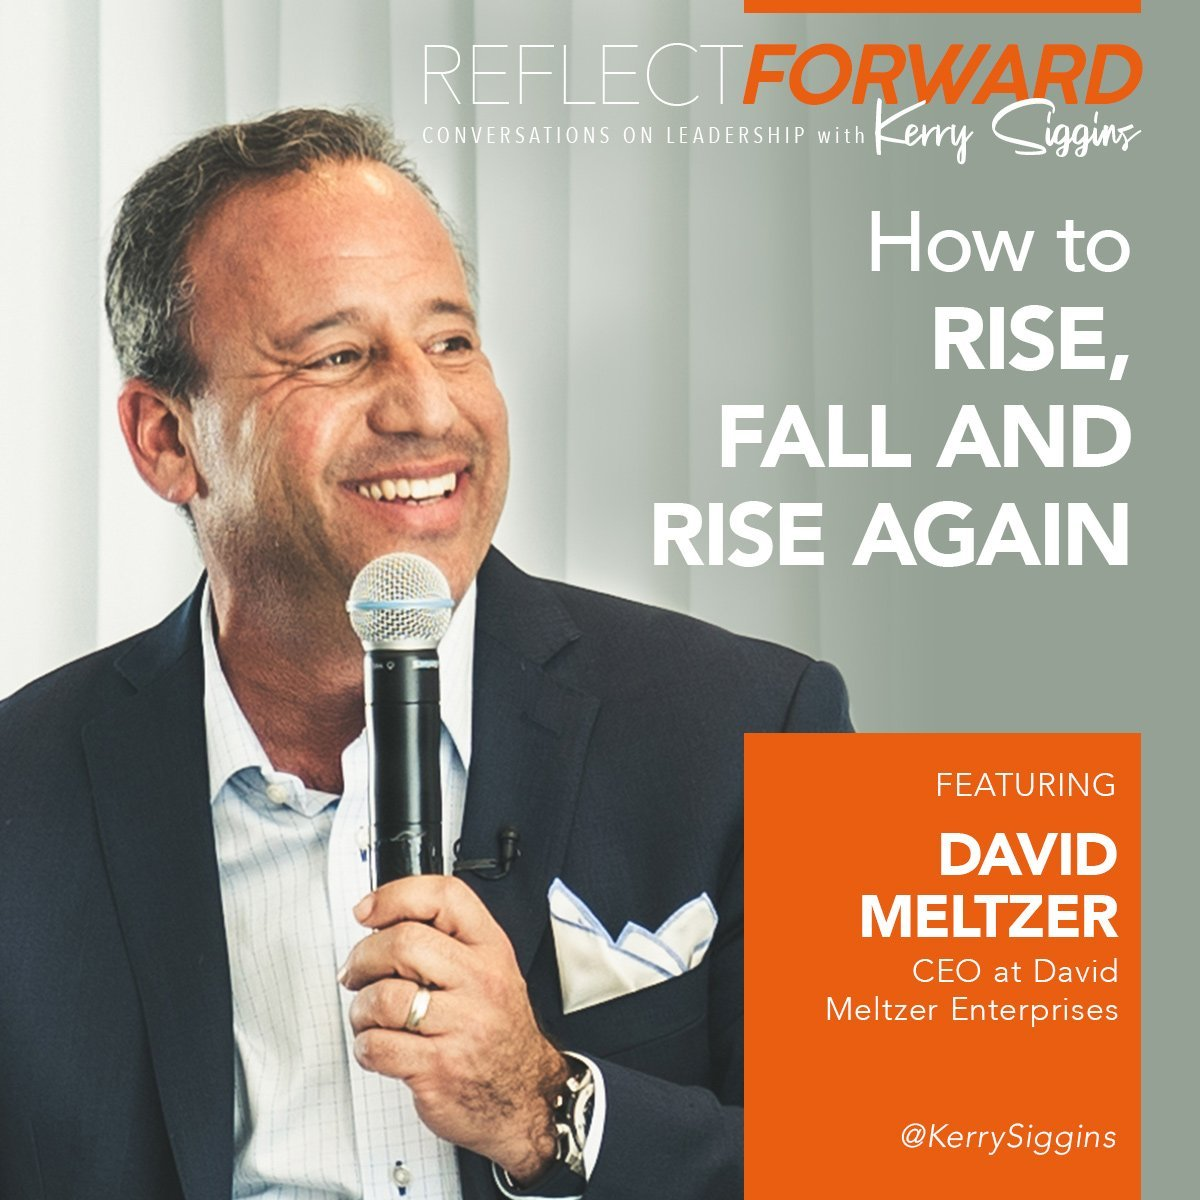 David Meltzer on Reflect Forward Podcast with Kerry Siggins